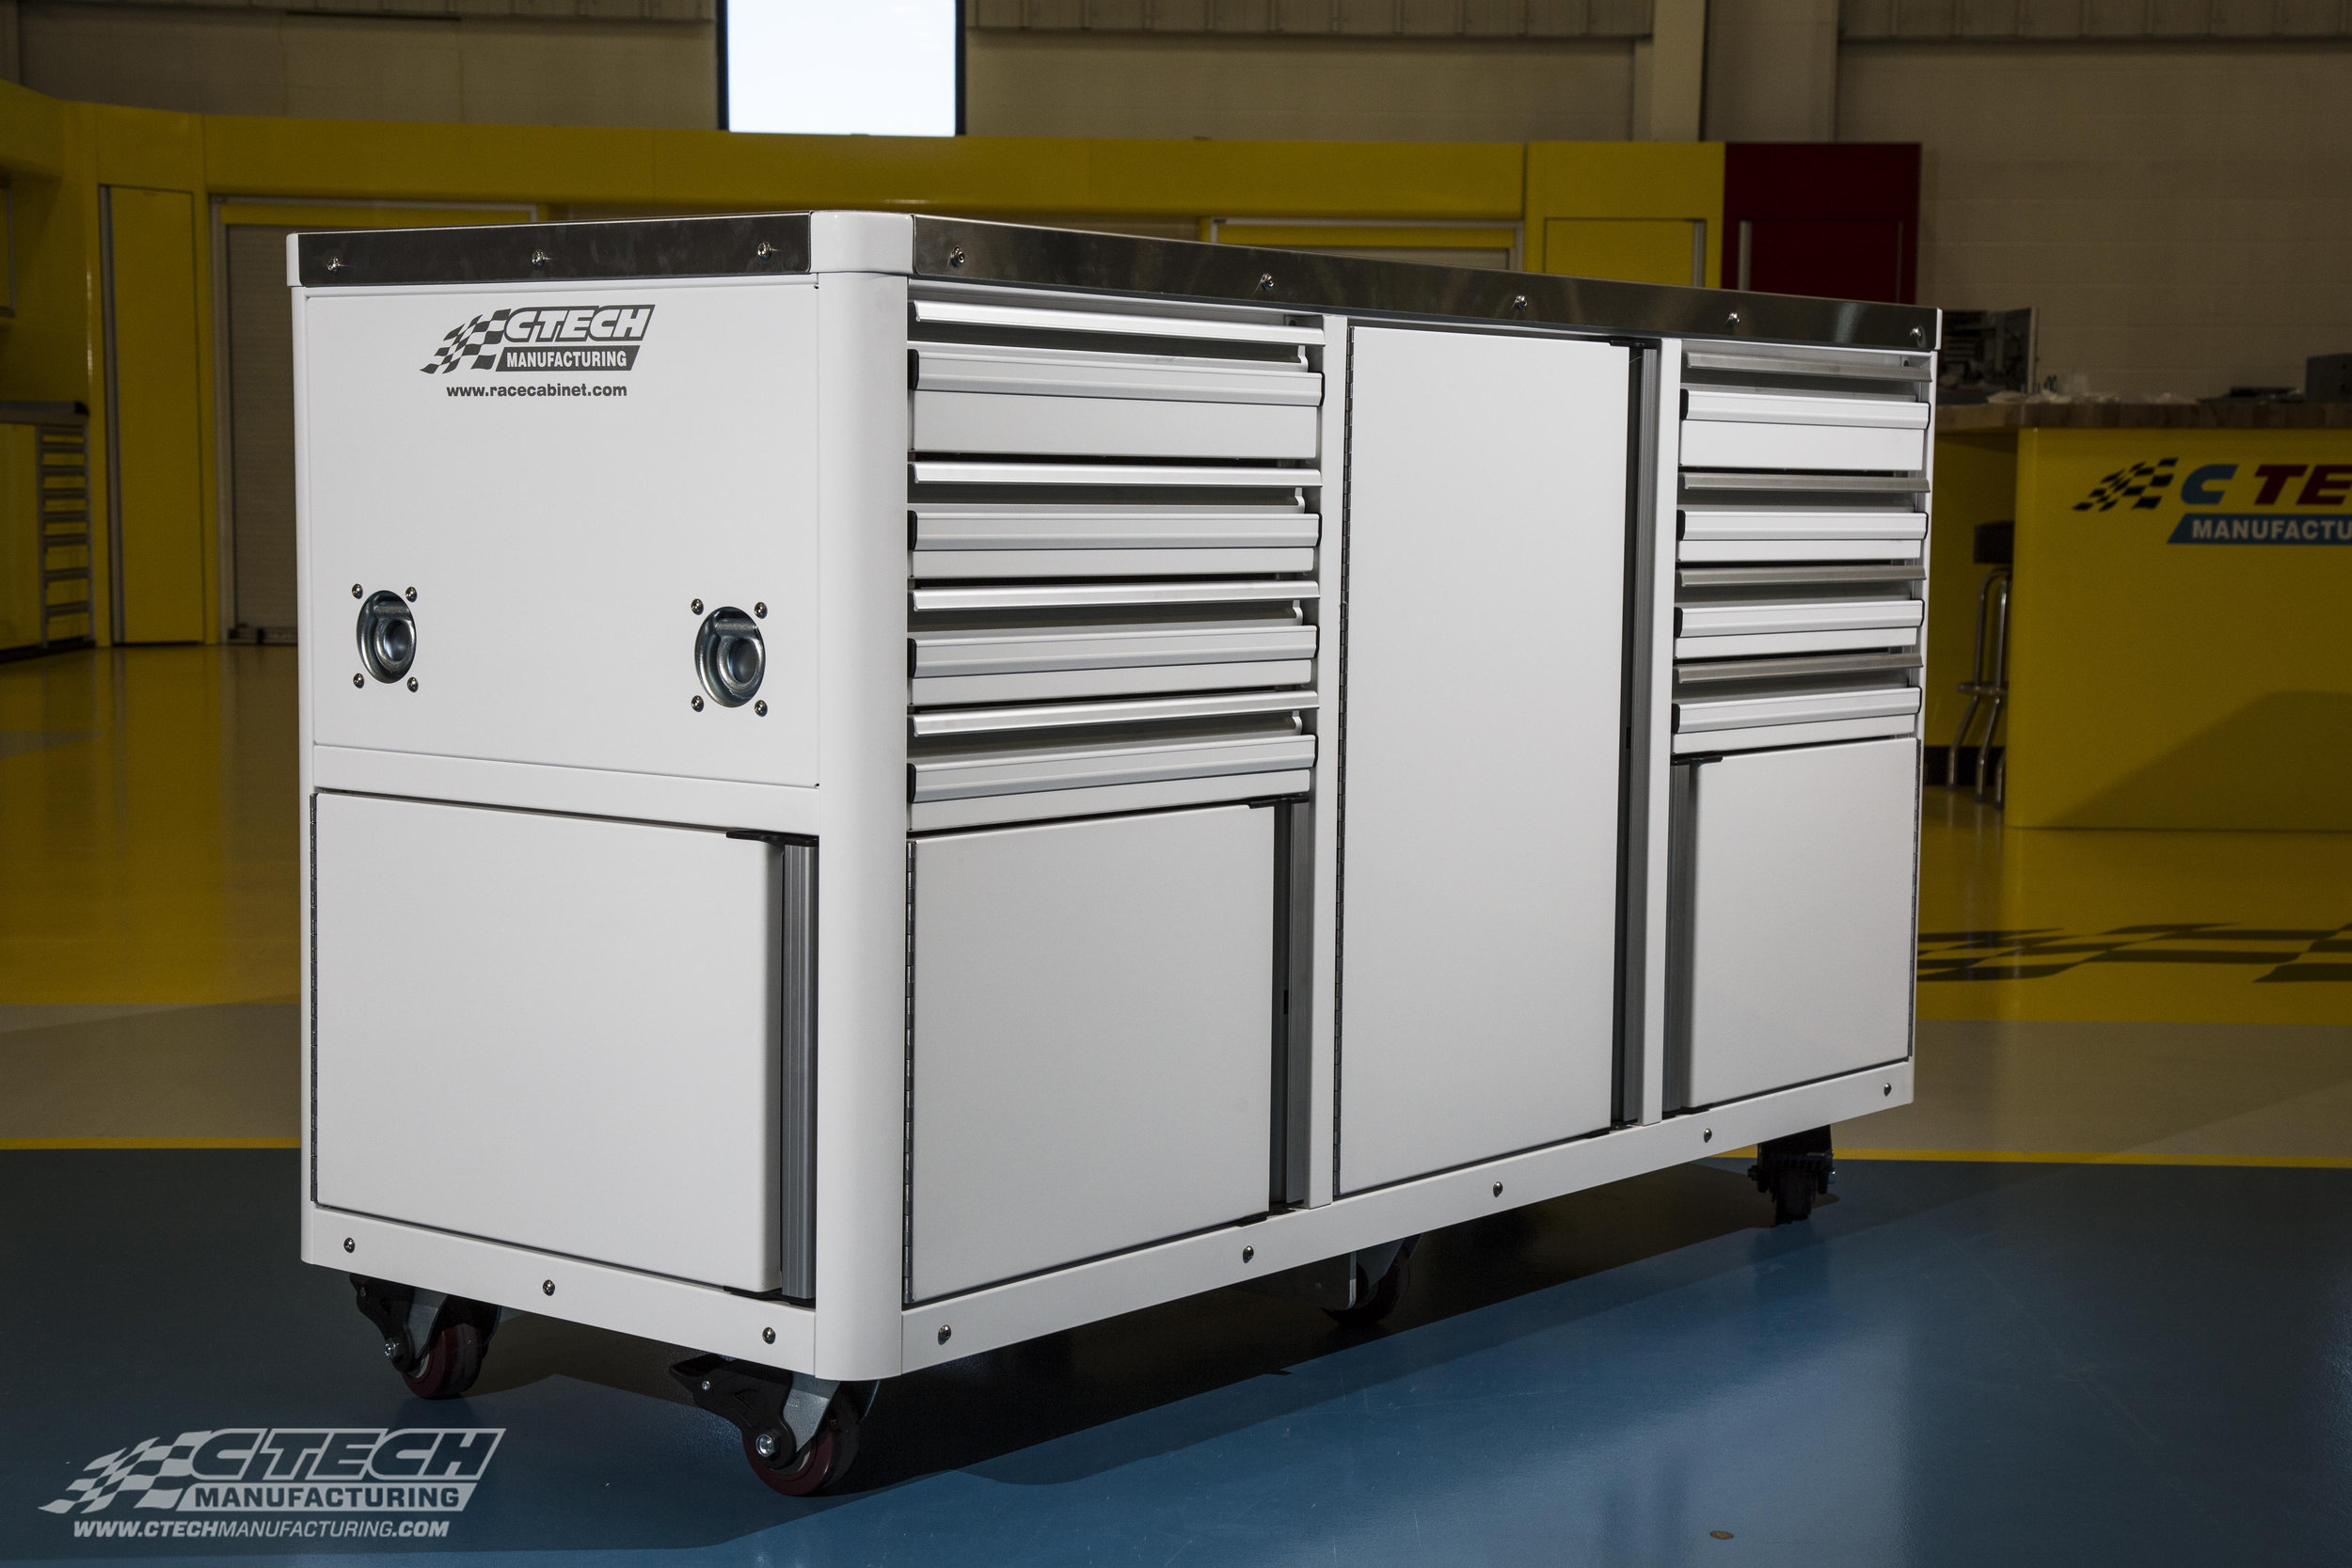 Standard CTECH Caster Carts come in 1, 2, or 3-opening storage configurations, but can also be customized to include any combination of MotionLatch Doors/Drawers, electrical hookups, and BlackLine Accessories.